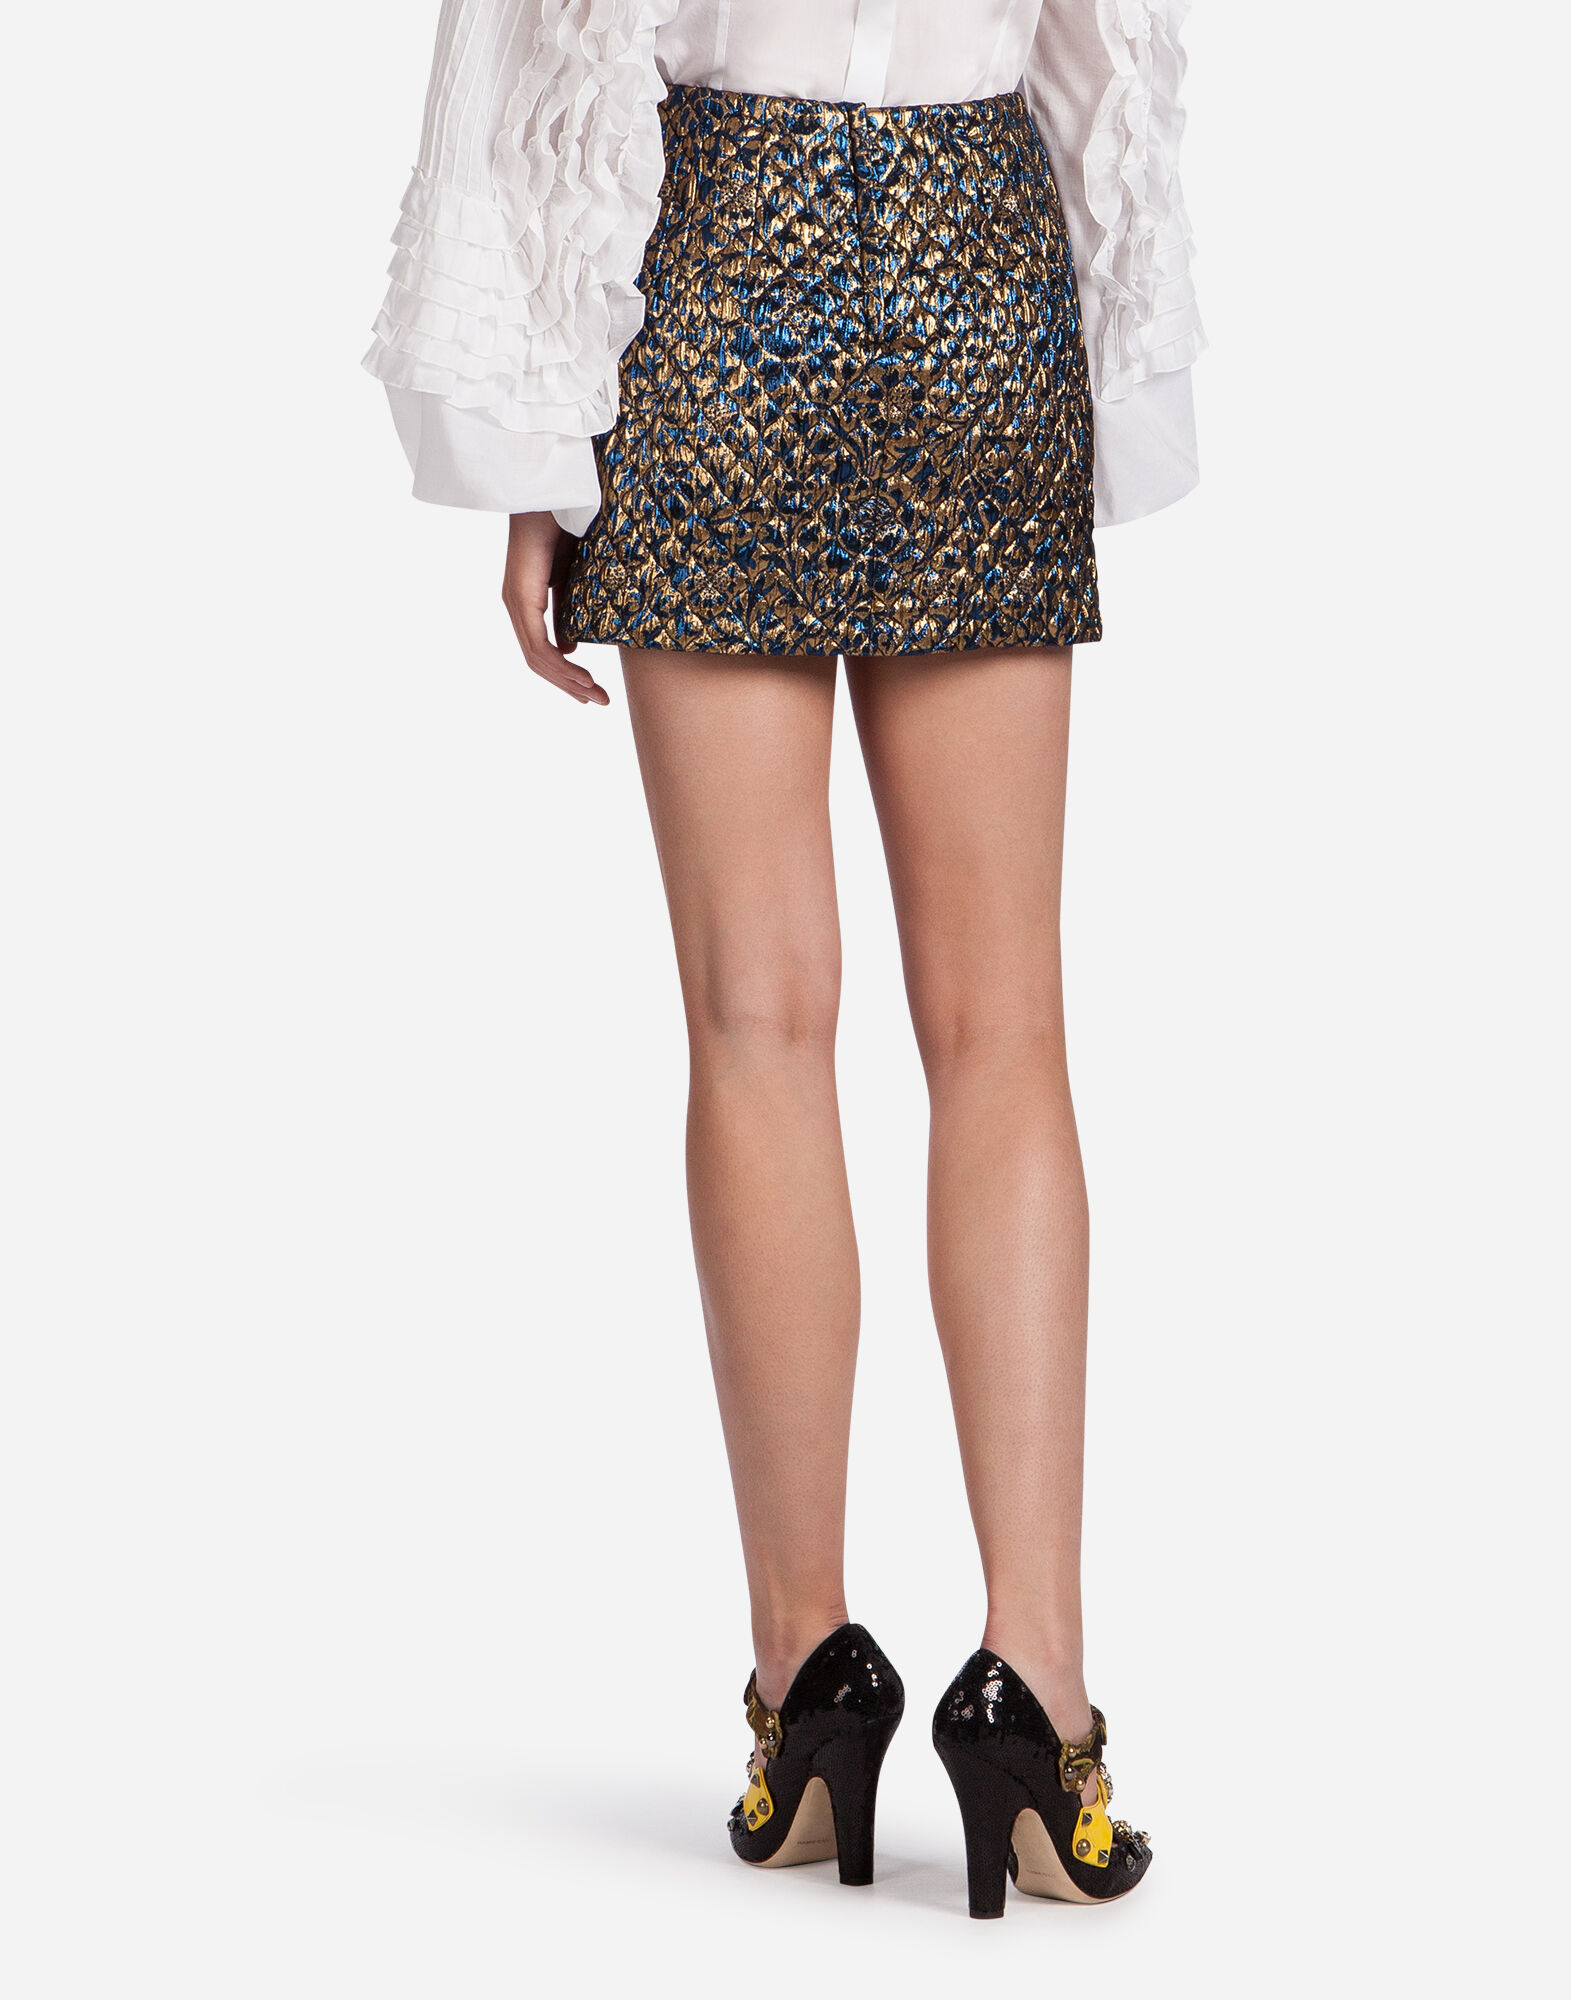 Dolce&Gabbana LUREX JACQUARD SKIRT WITH JEWEL BUCKLES